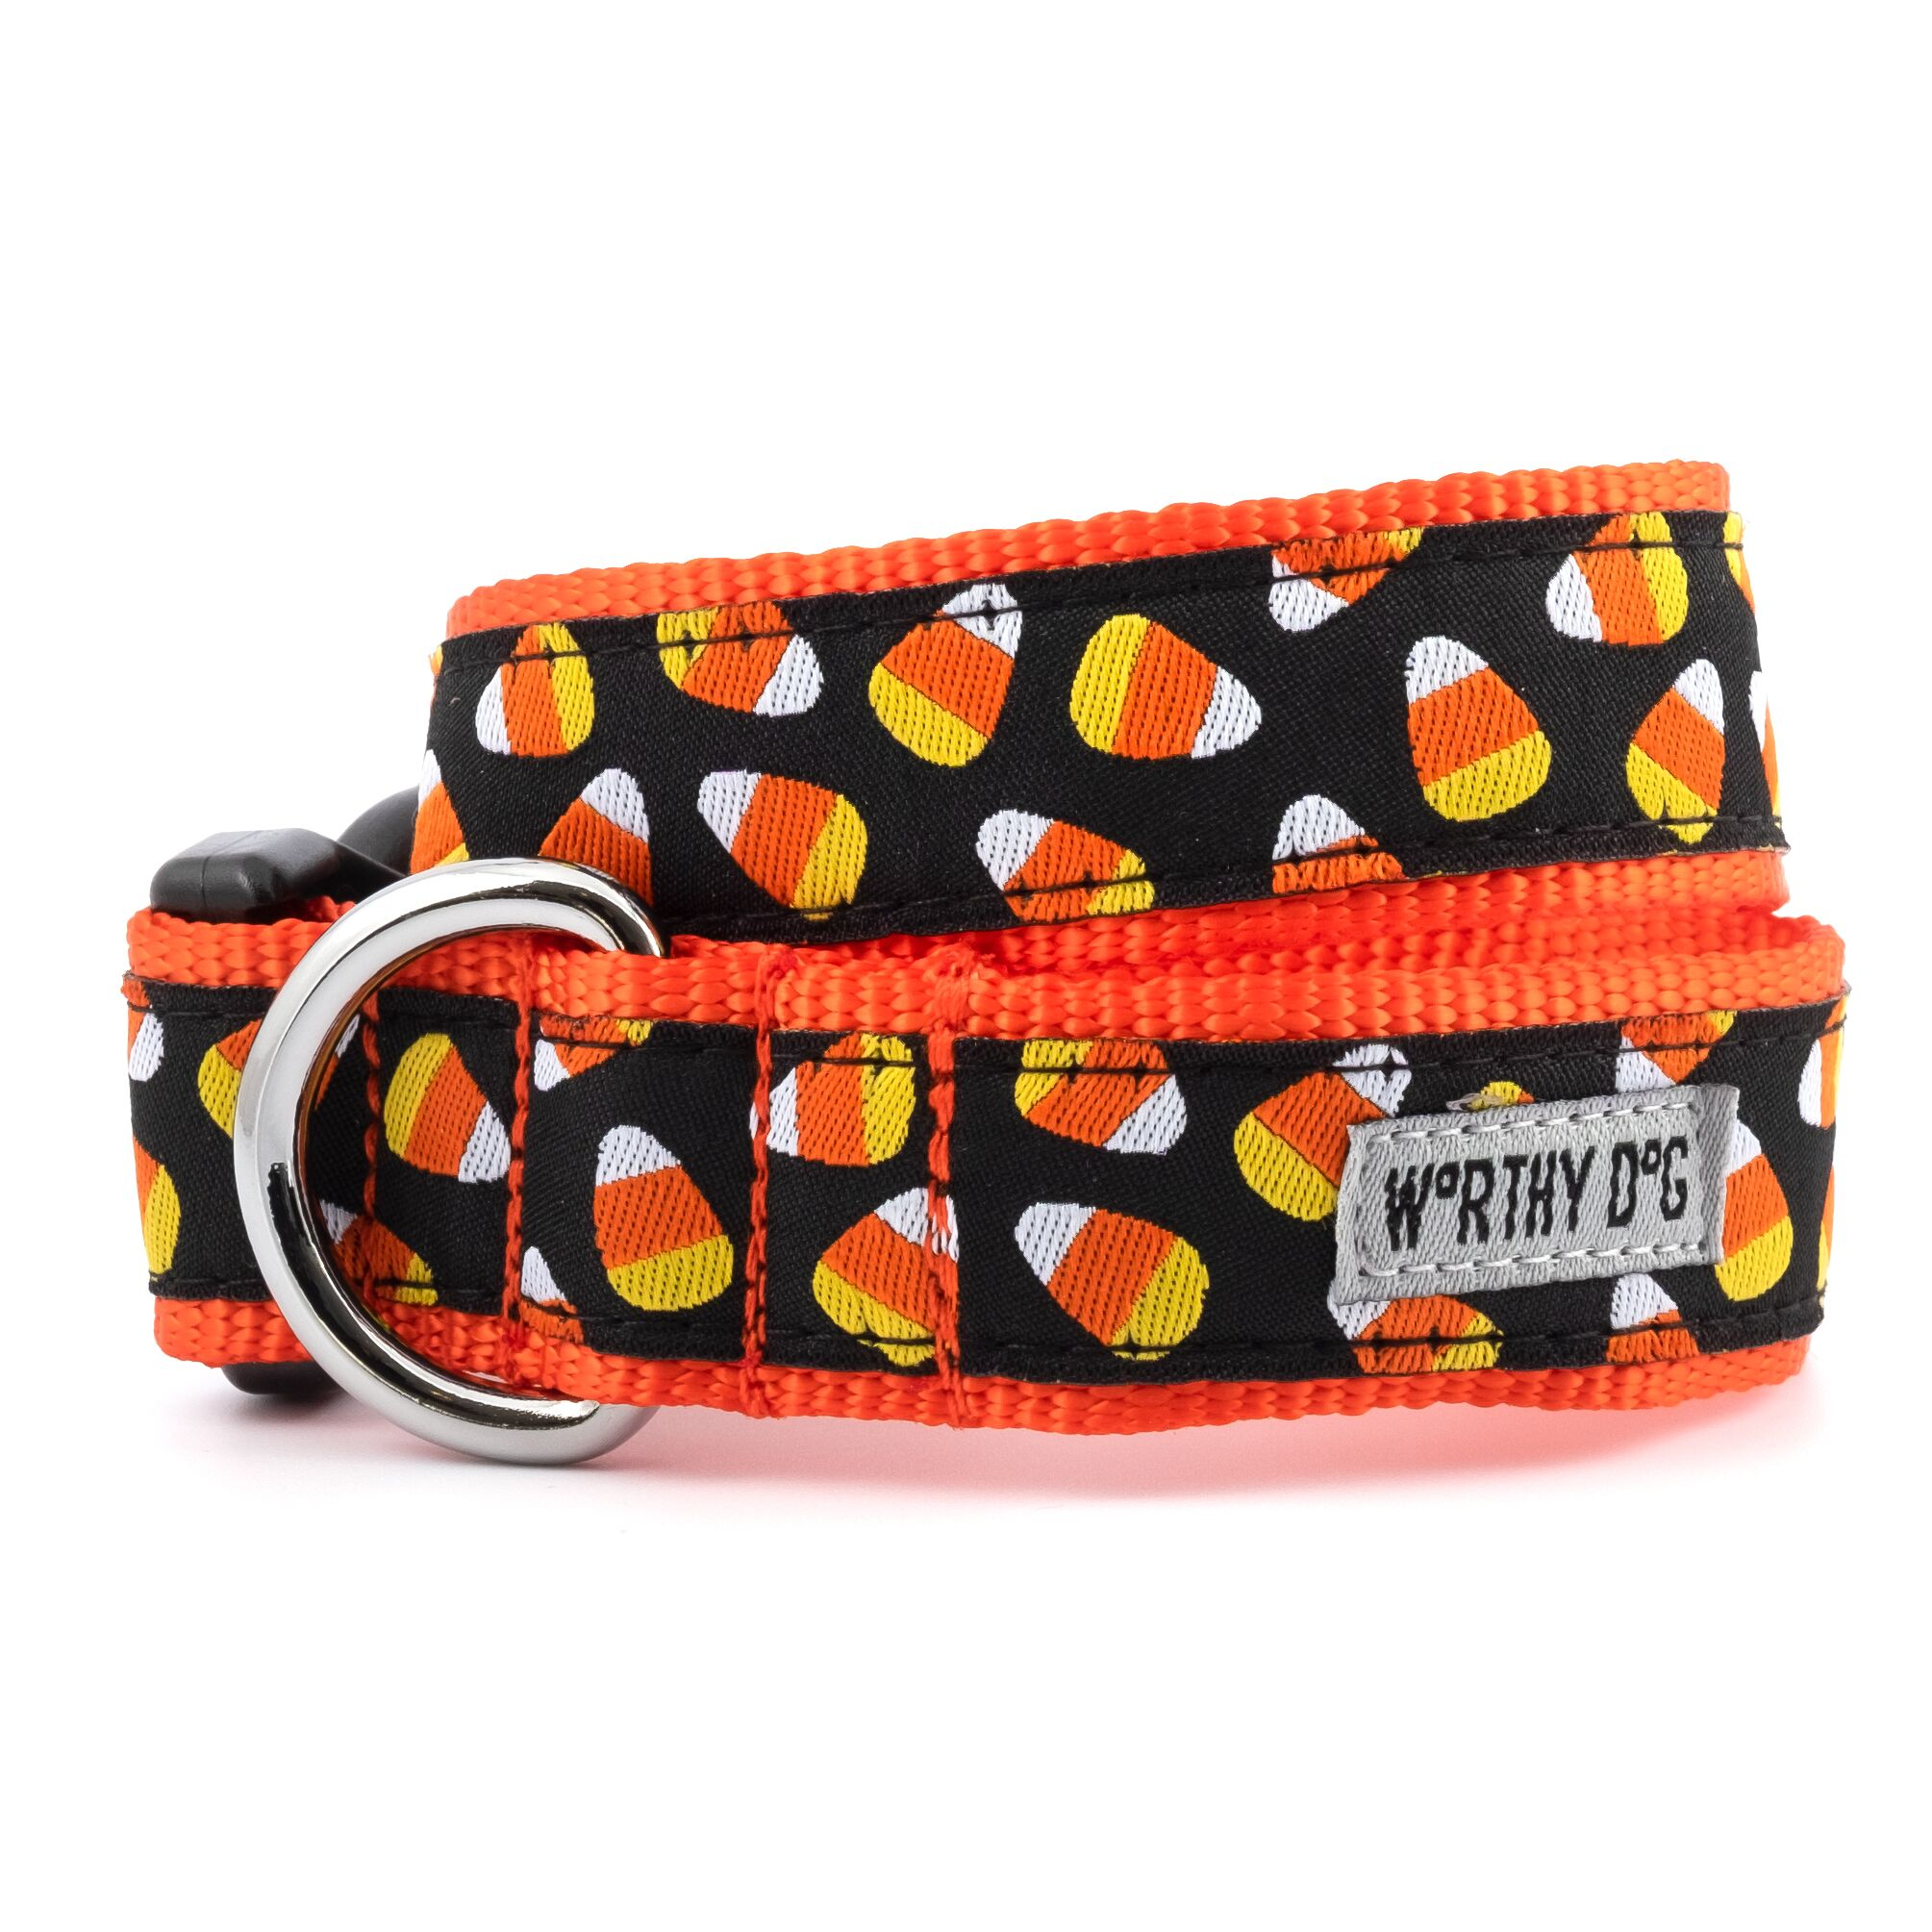 The Worthy Dog Collar, Candy Corn, X-Small